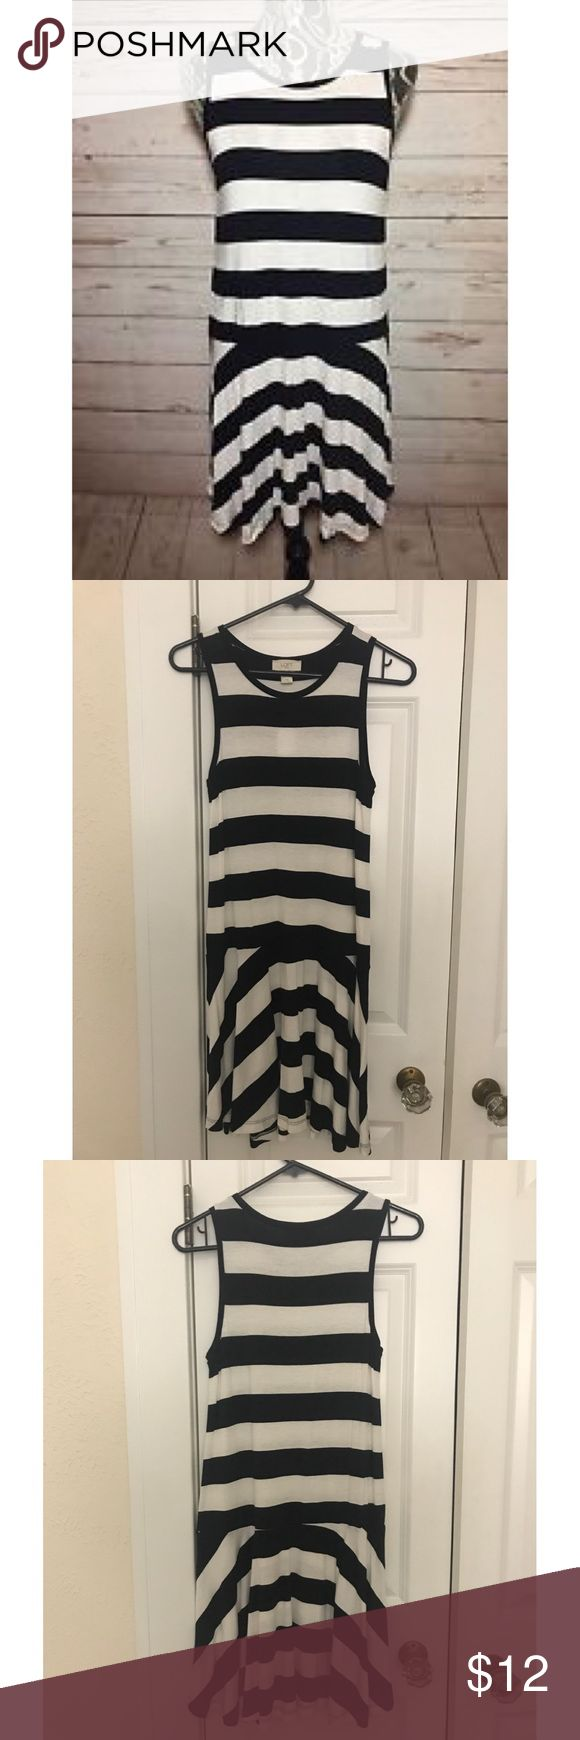 Ann Taylor LOFT Outlet Striped Dress Black & white striped dress from Ann Taylor LOFT Outlet. Brand new with tag. 97% rayon, 3% spandex. Ann Taylor LOFT Outlet Dresses